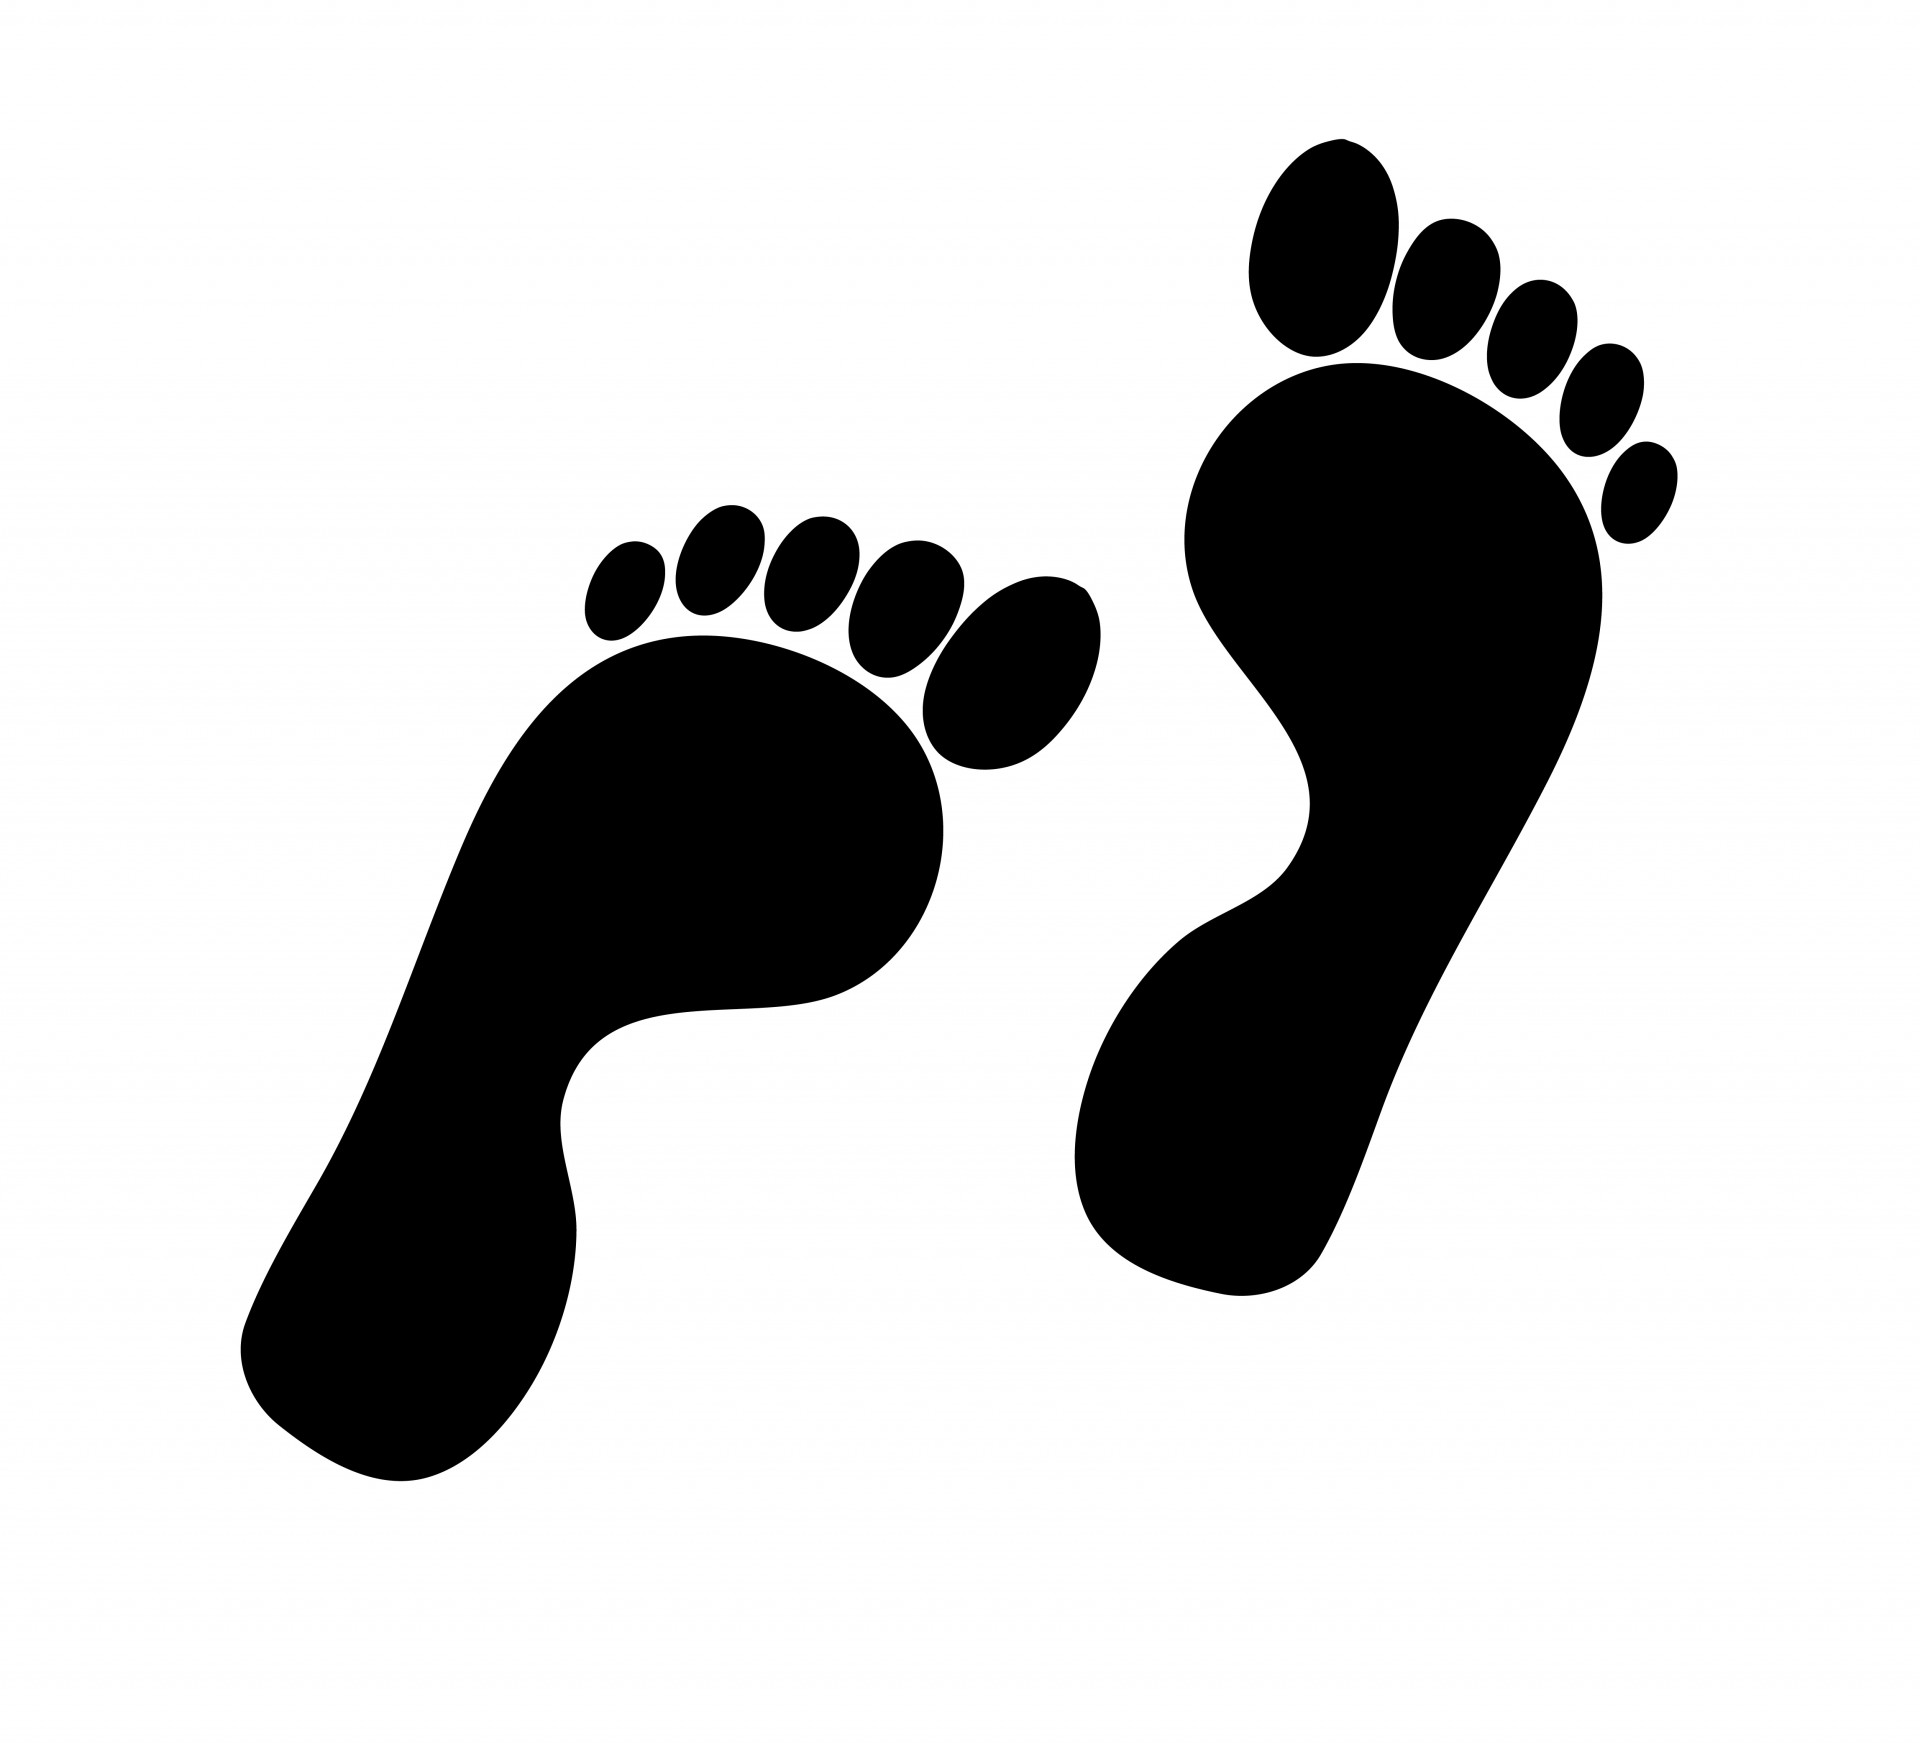 Footprint clipart #6, Download drawings